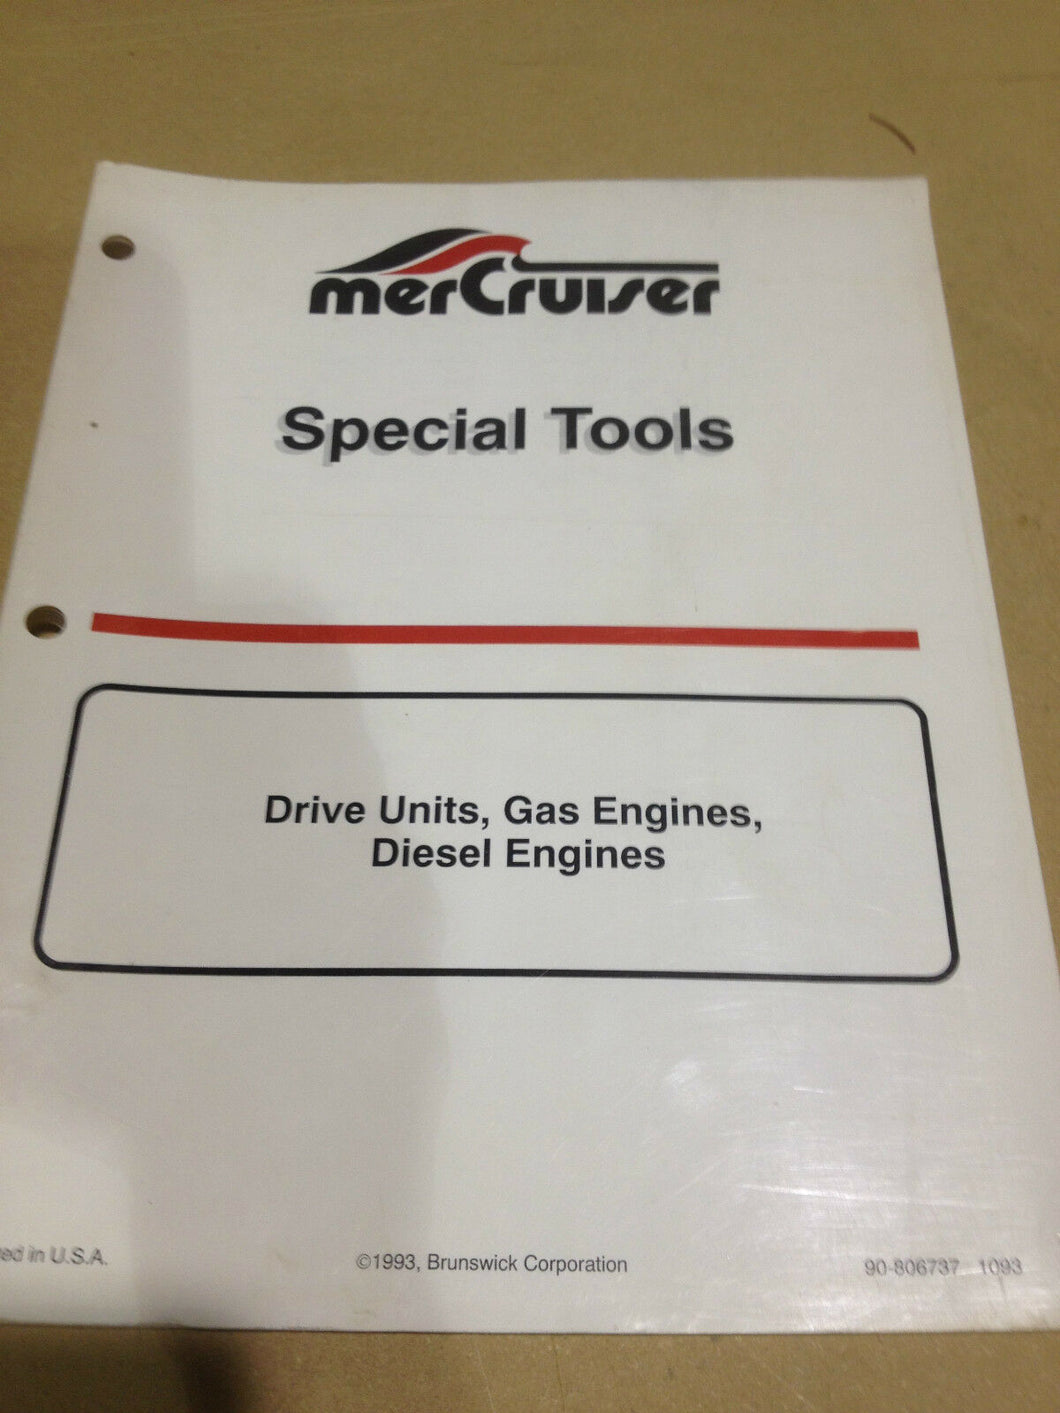 Mercruiser Special Tools drive, gas and diesel engine manual 1993 90-806737